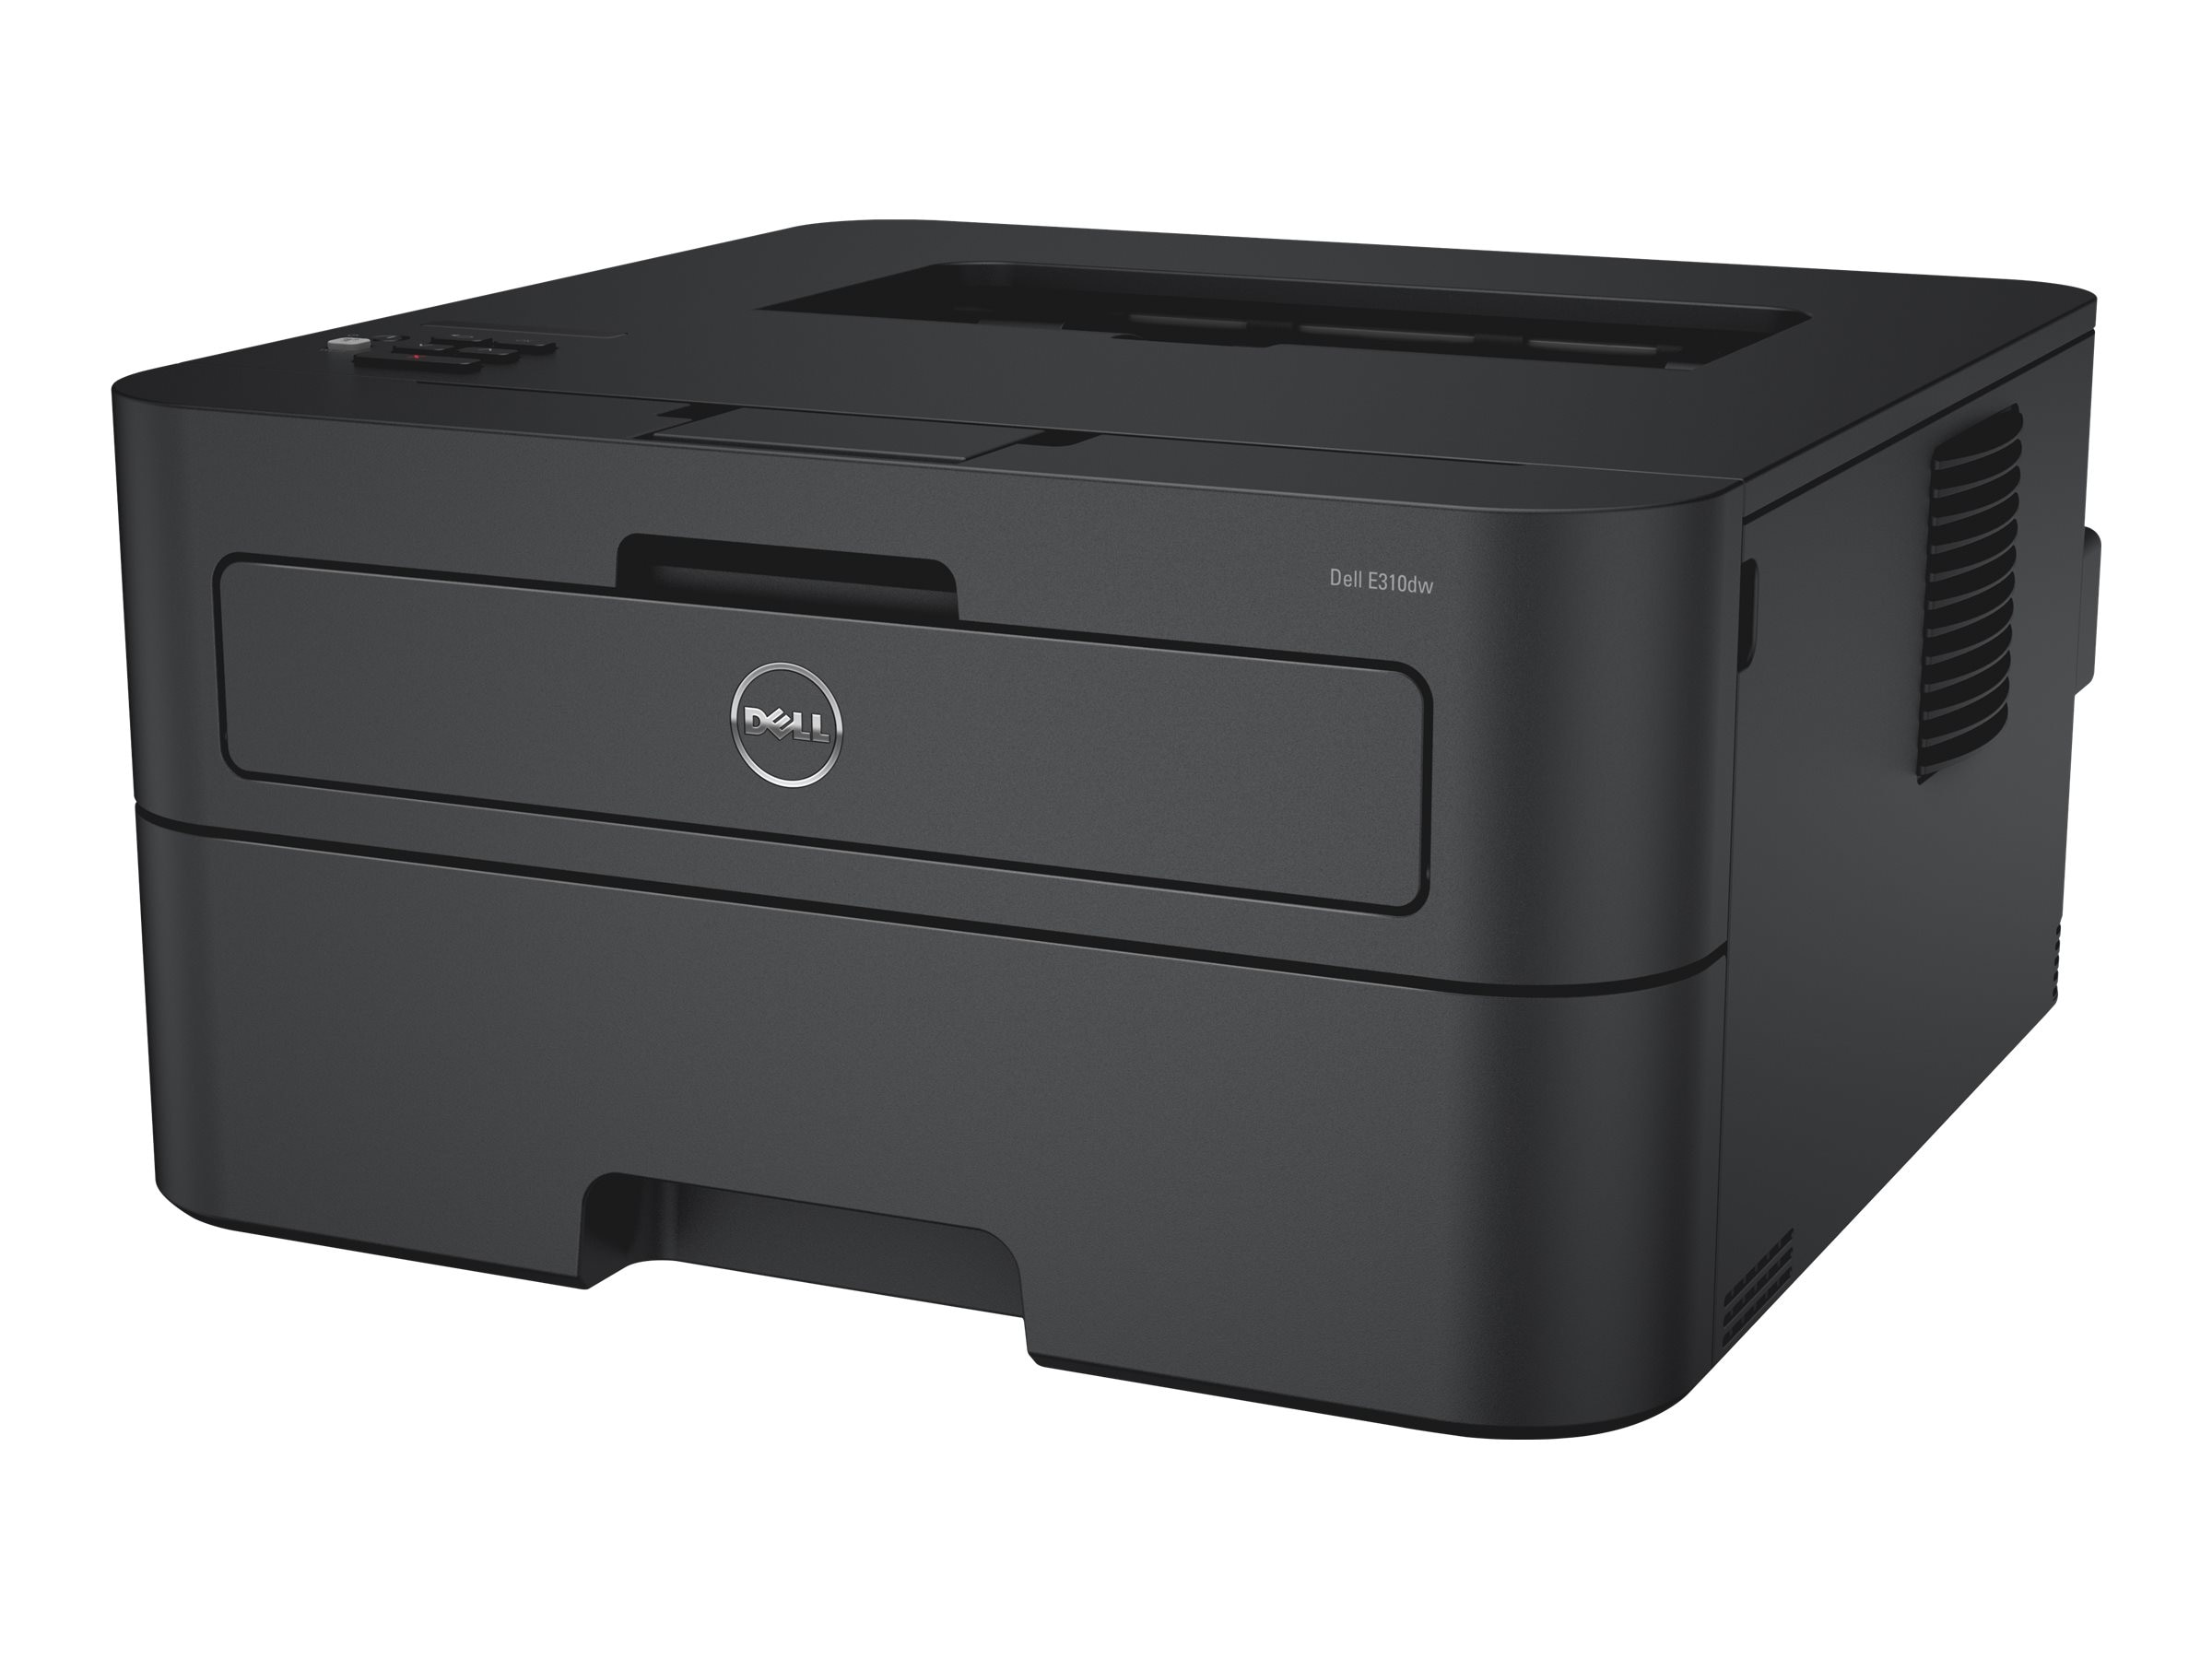 Dell E310dw Black & White Laser Printer (210-AEHL)